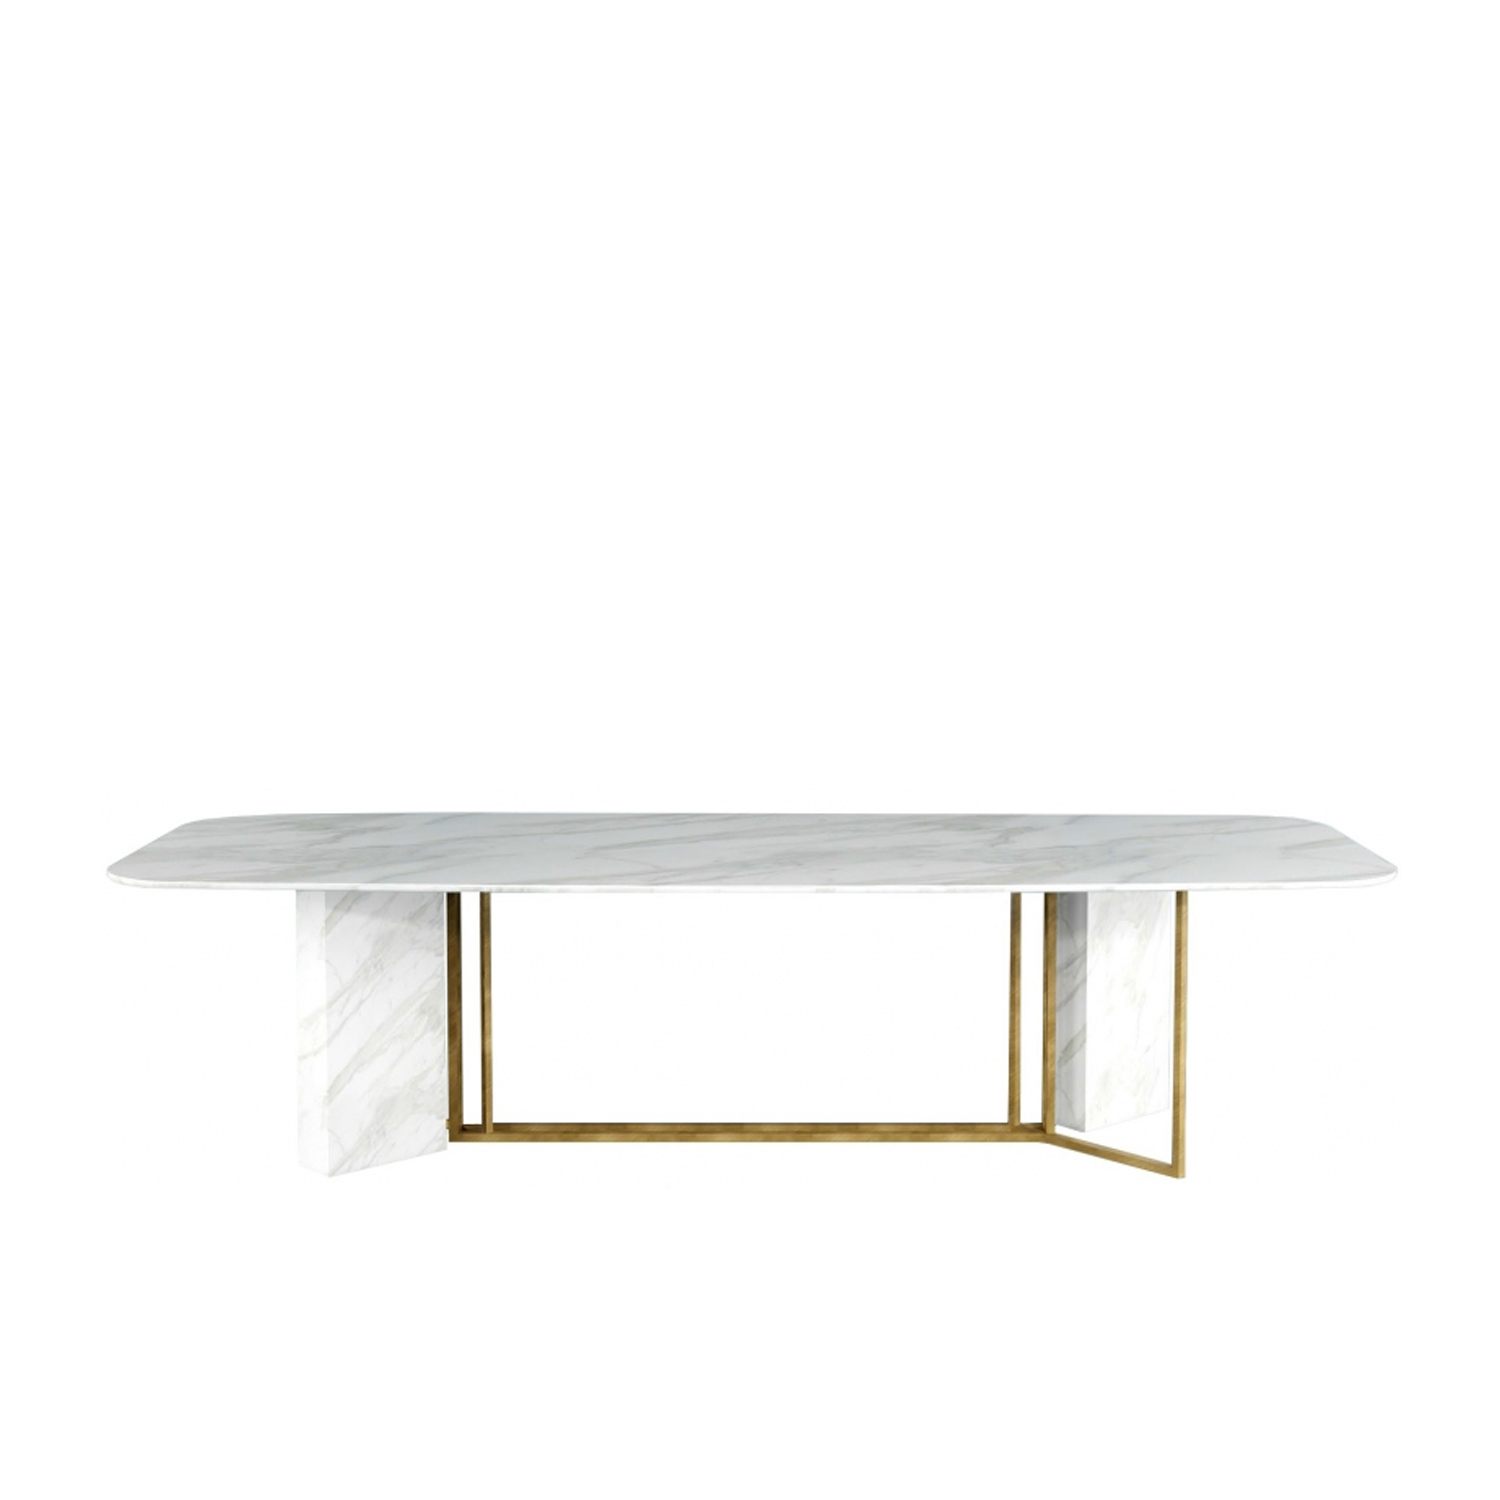 Plinto Rectangular Large Dining Table - Dining tables with metal base with plinth. Tops in different models and dimensions. Finishes for metal base - black varnishes - bronzed brass Finishes for plinth - wood veneer - matt or glossy lacquer - marble Finishes for tops - wood veneer - matt or glossy lacquer - marble | Matter of Stuff